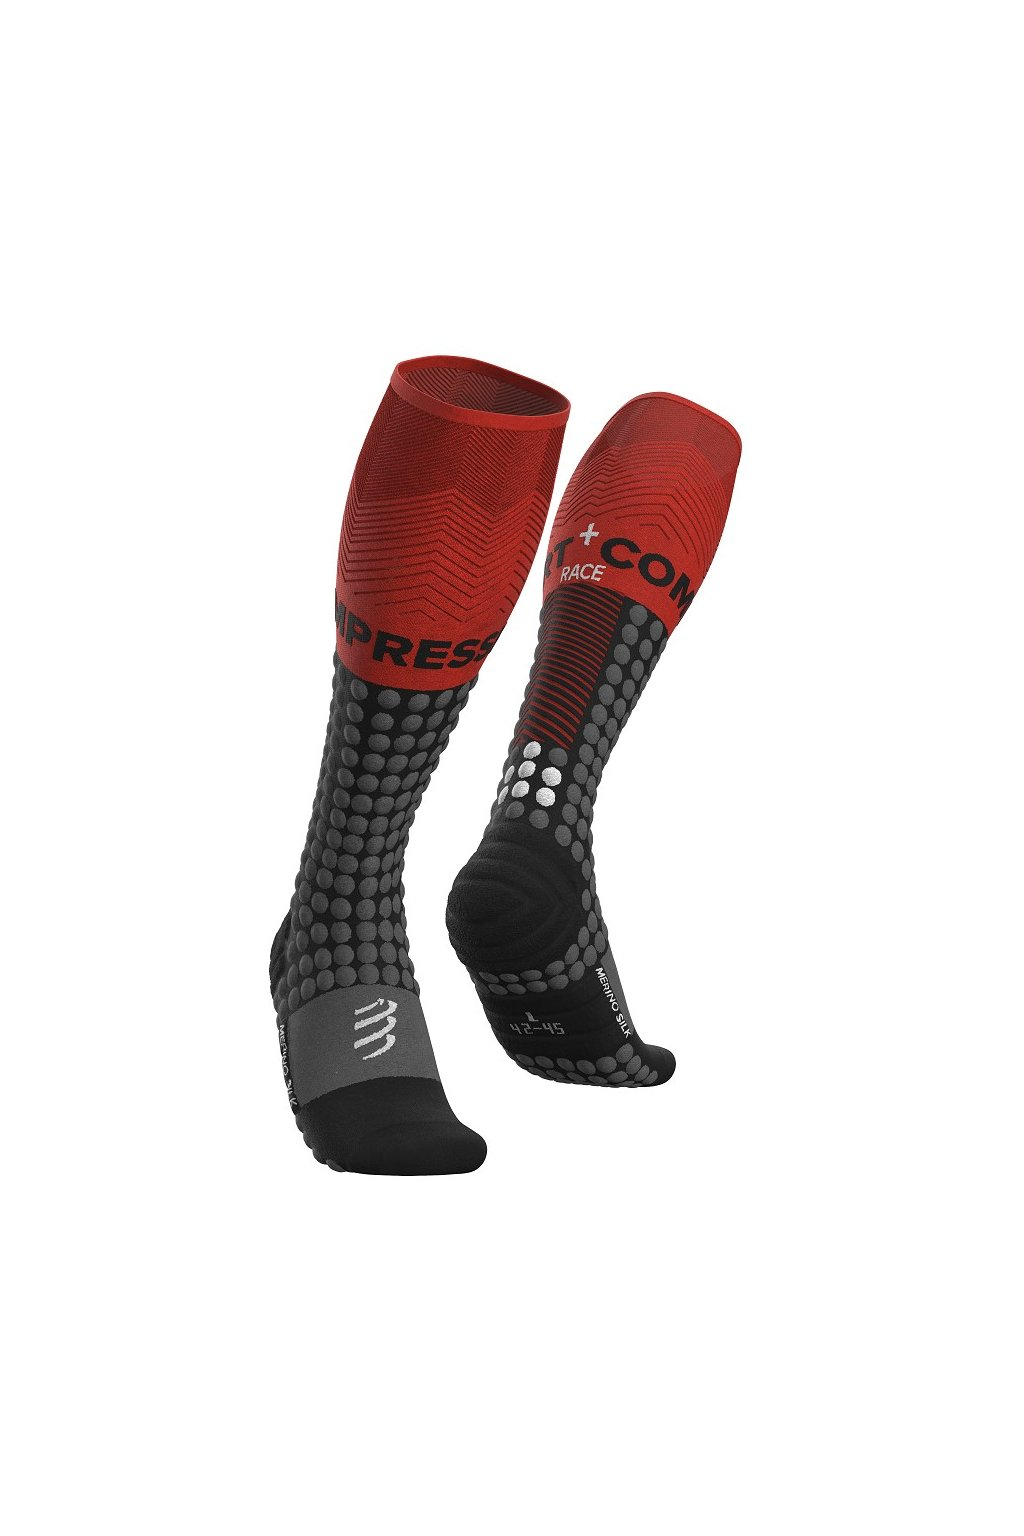 alpine ski racing full socks black red t1